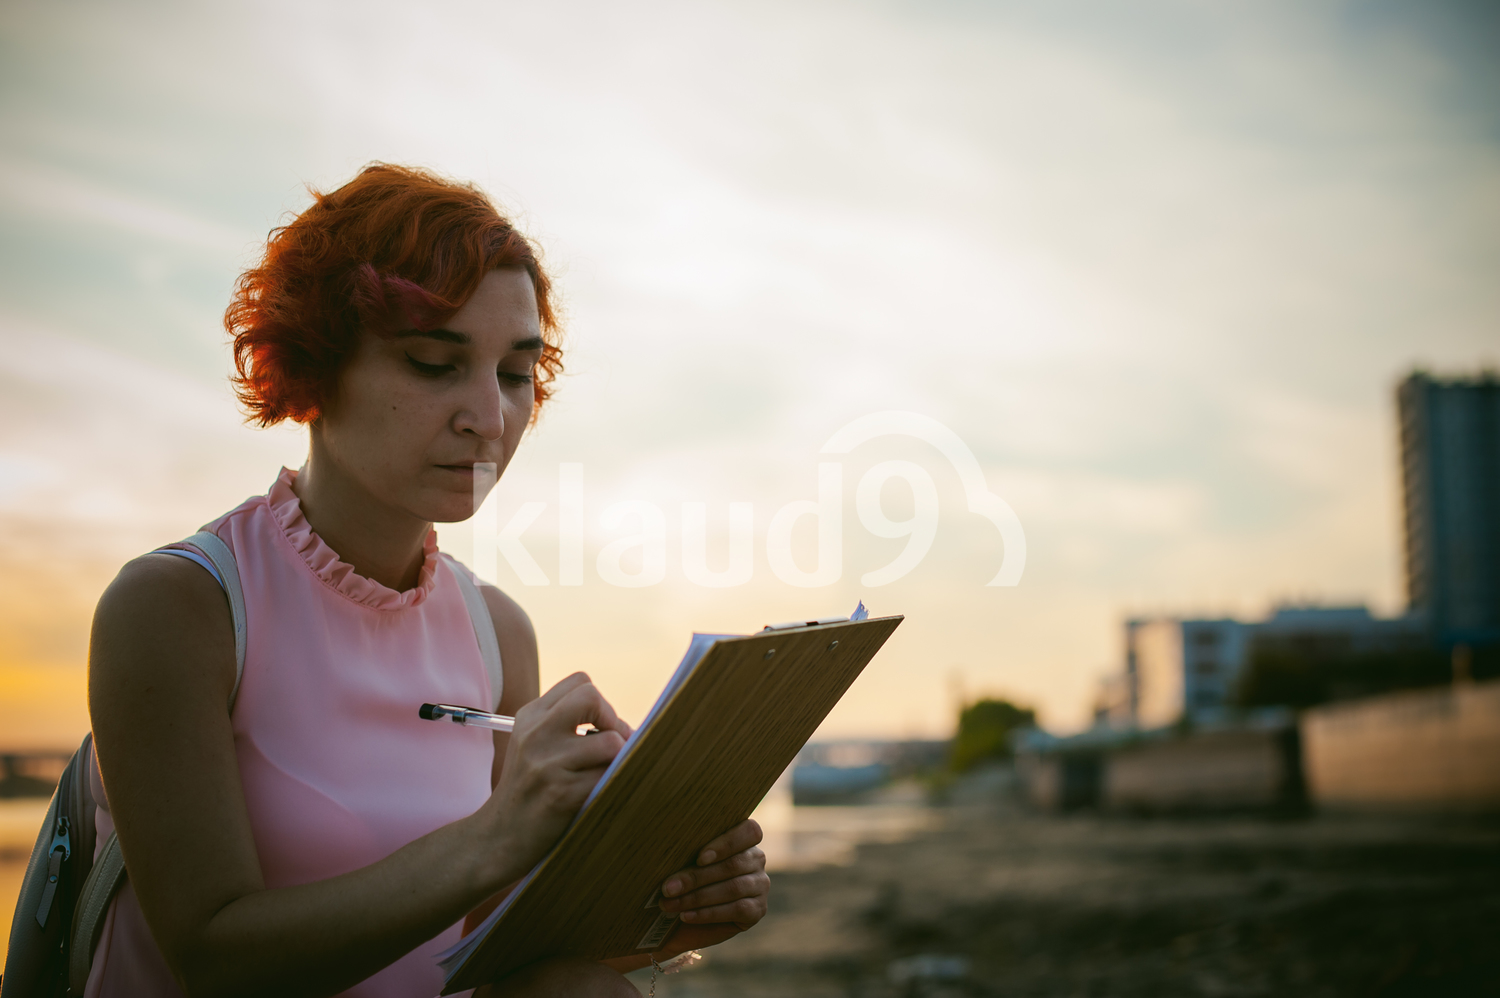 Woman with dyed red hair signing documents